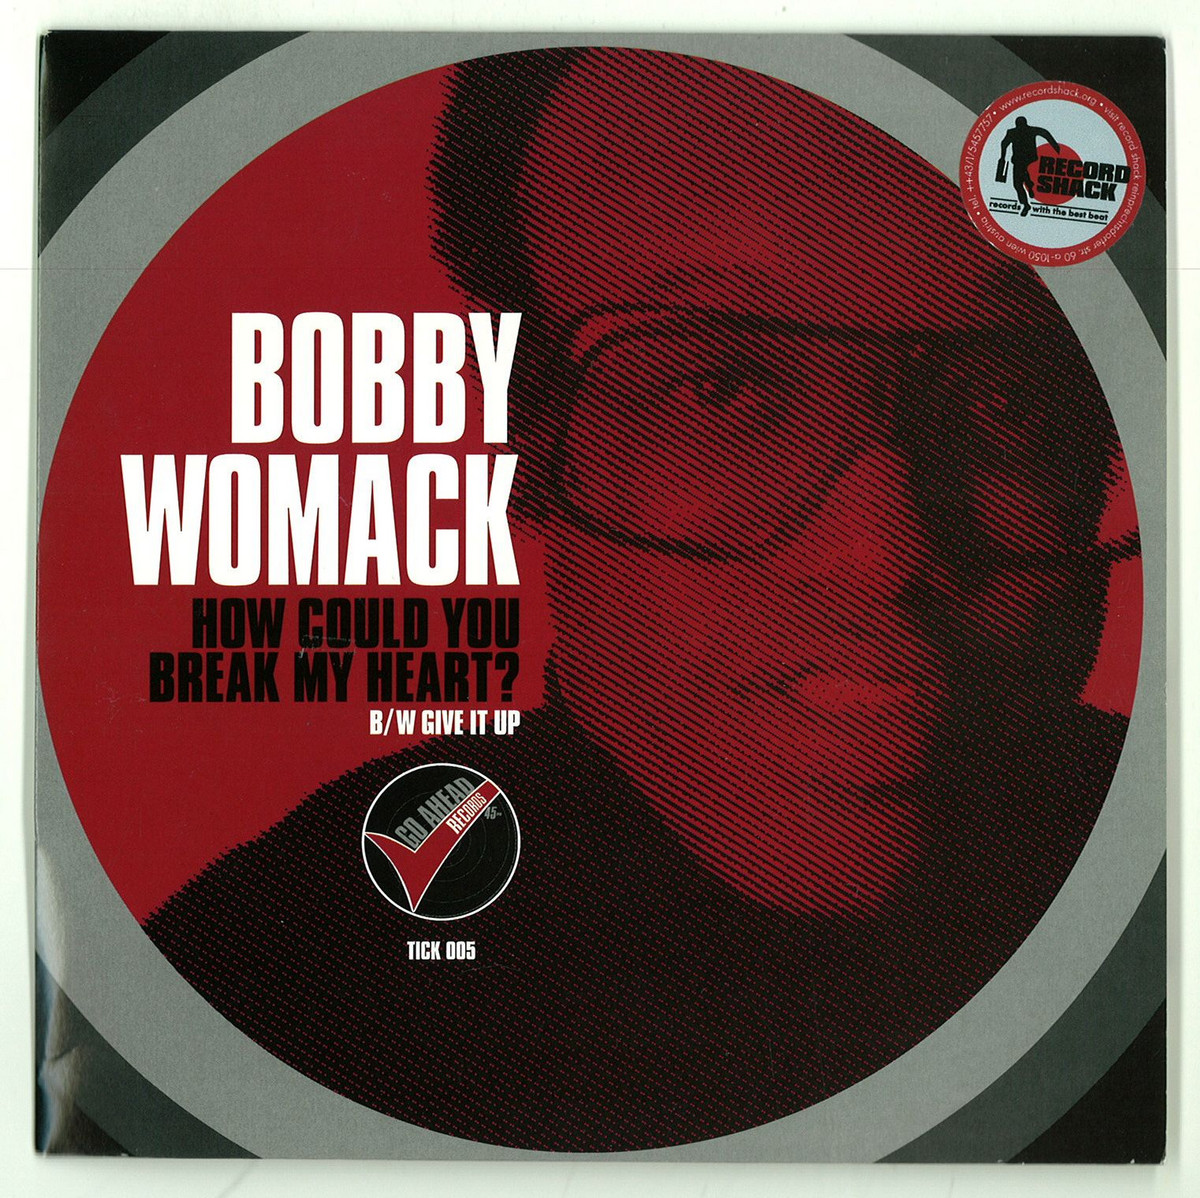 BOBBY WOMACK ... HOW COULD YOU BREAK MY HEART - YouTube